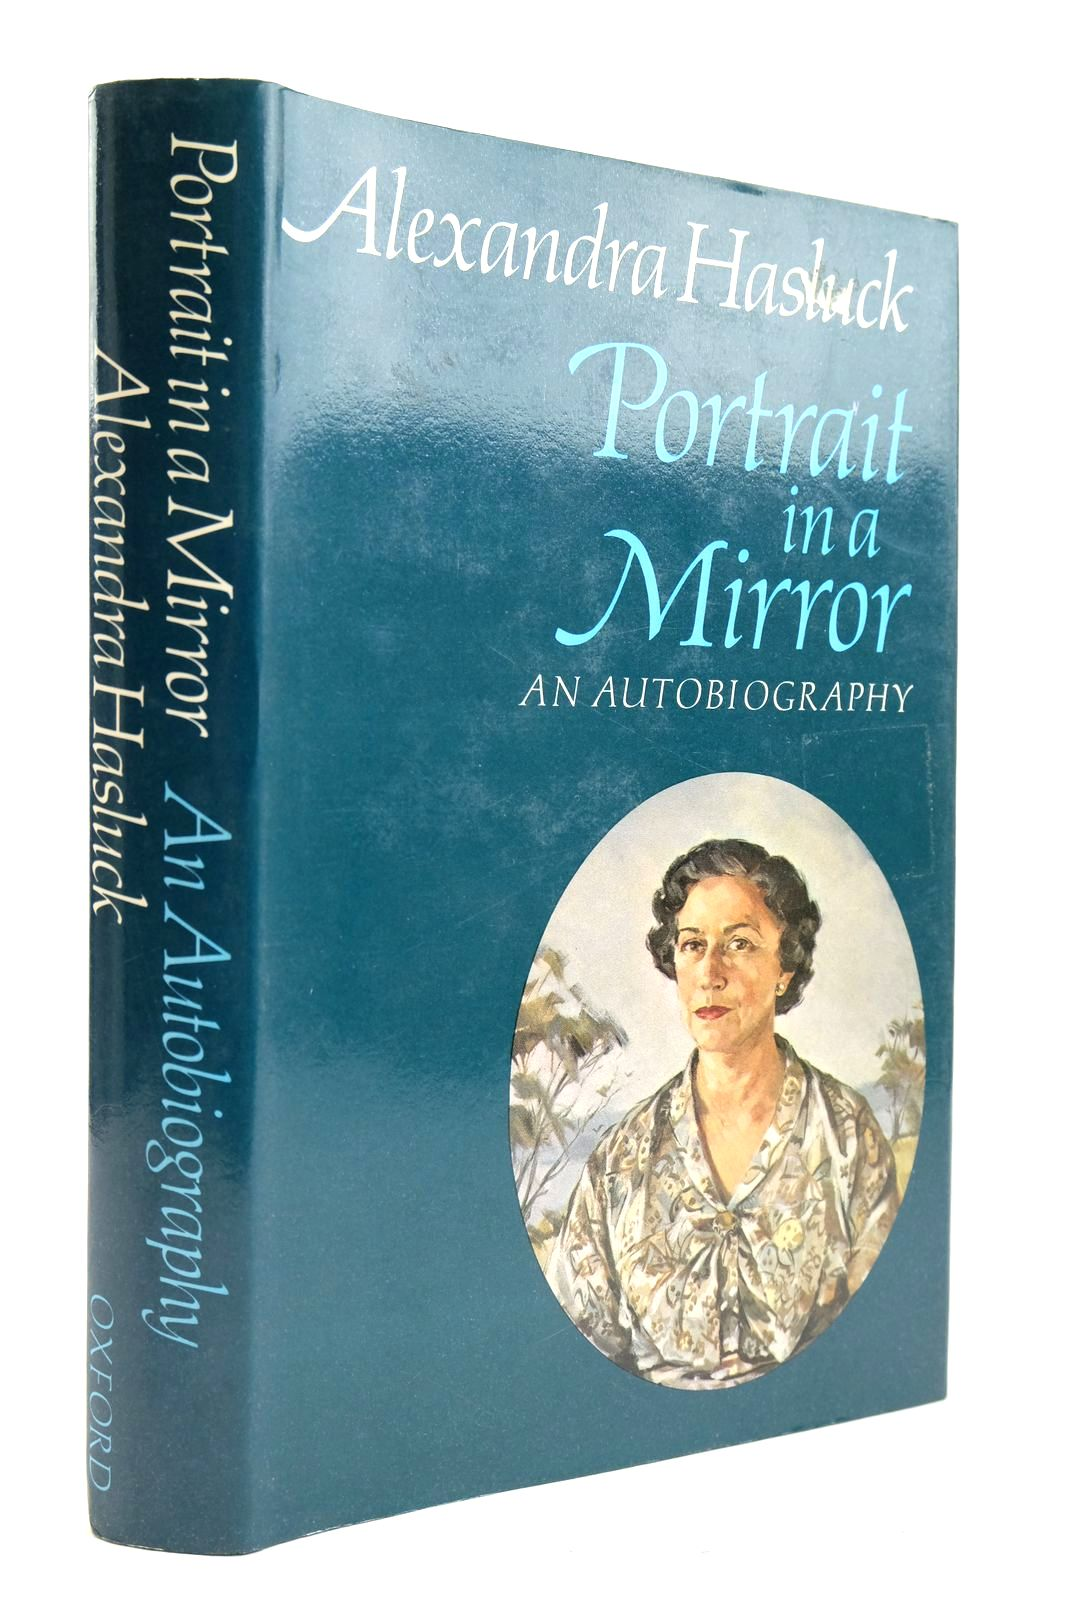 Photo of PORTRAIT IN A MIRROR AN AUTOBIOGRAPHY- Stock Number: 2132943